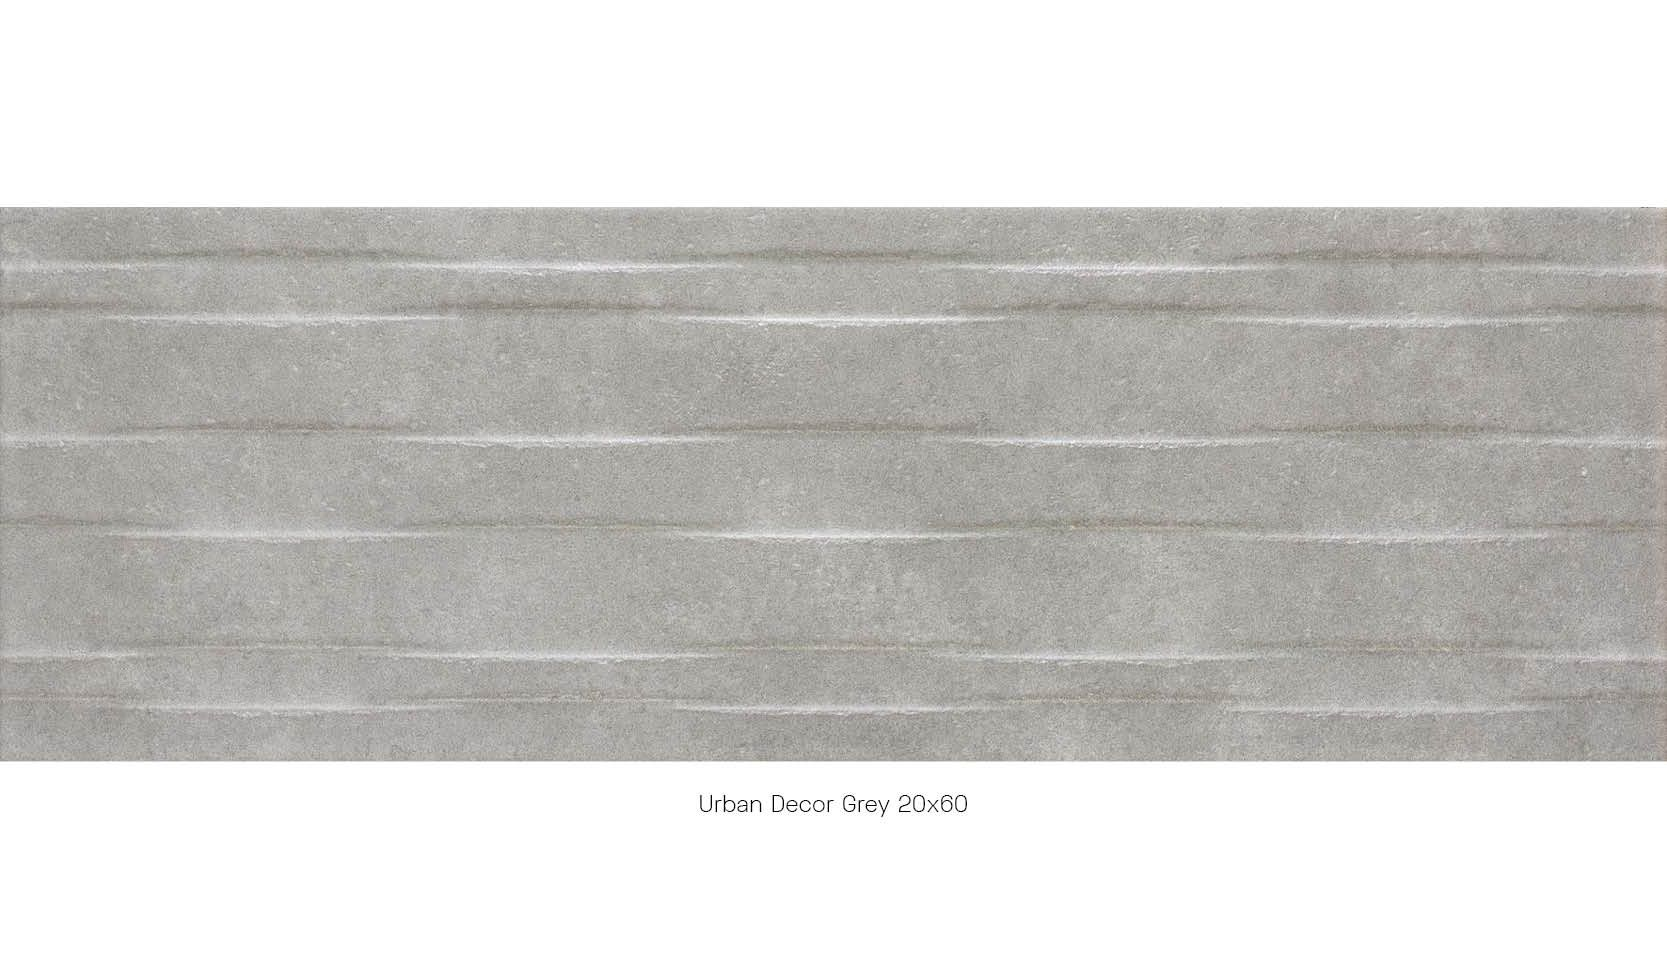 Urban decor grey 20 x 60